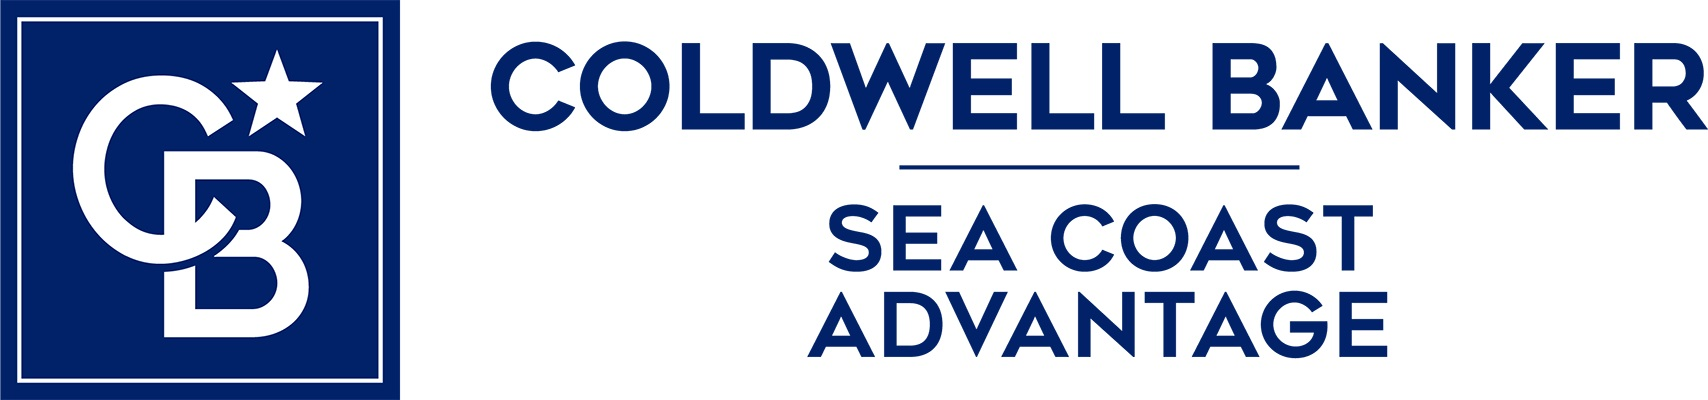 Tina Dawson - Coldwell Banker Sea Coast Advantage Realty